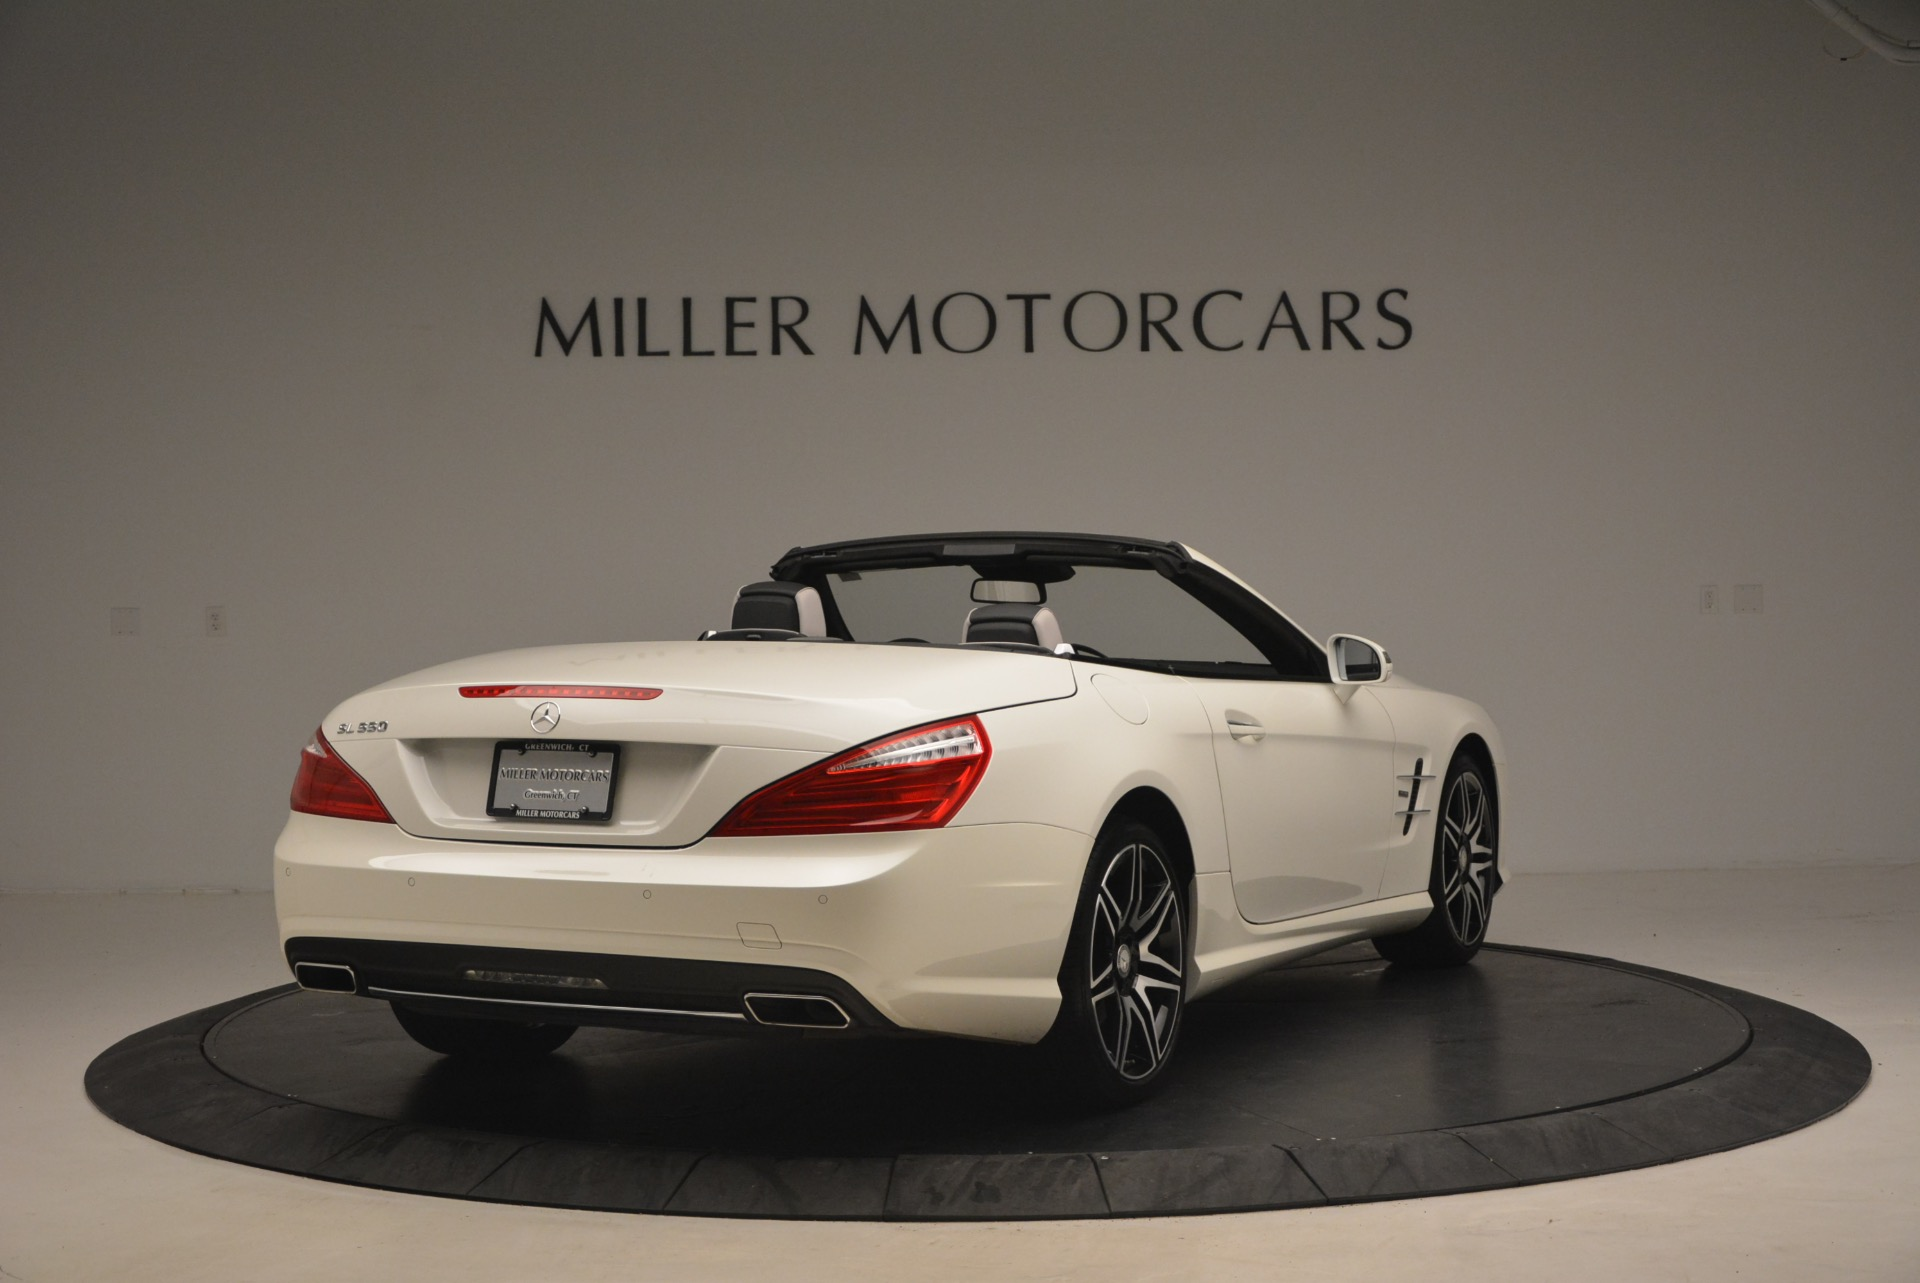 Used 2015 Mercedes Benz SL-Class SL 550 For Sale In Greenwich, CT 1261_p7